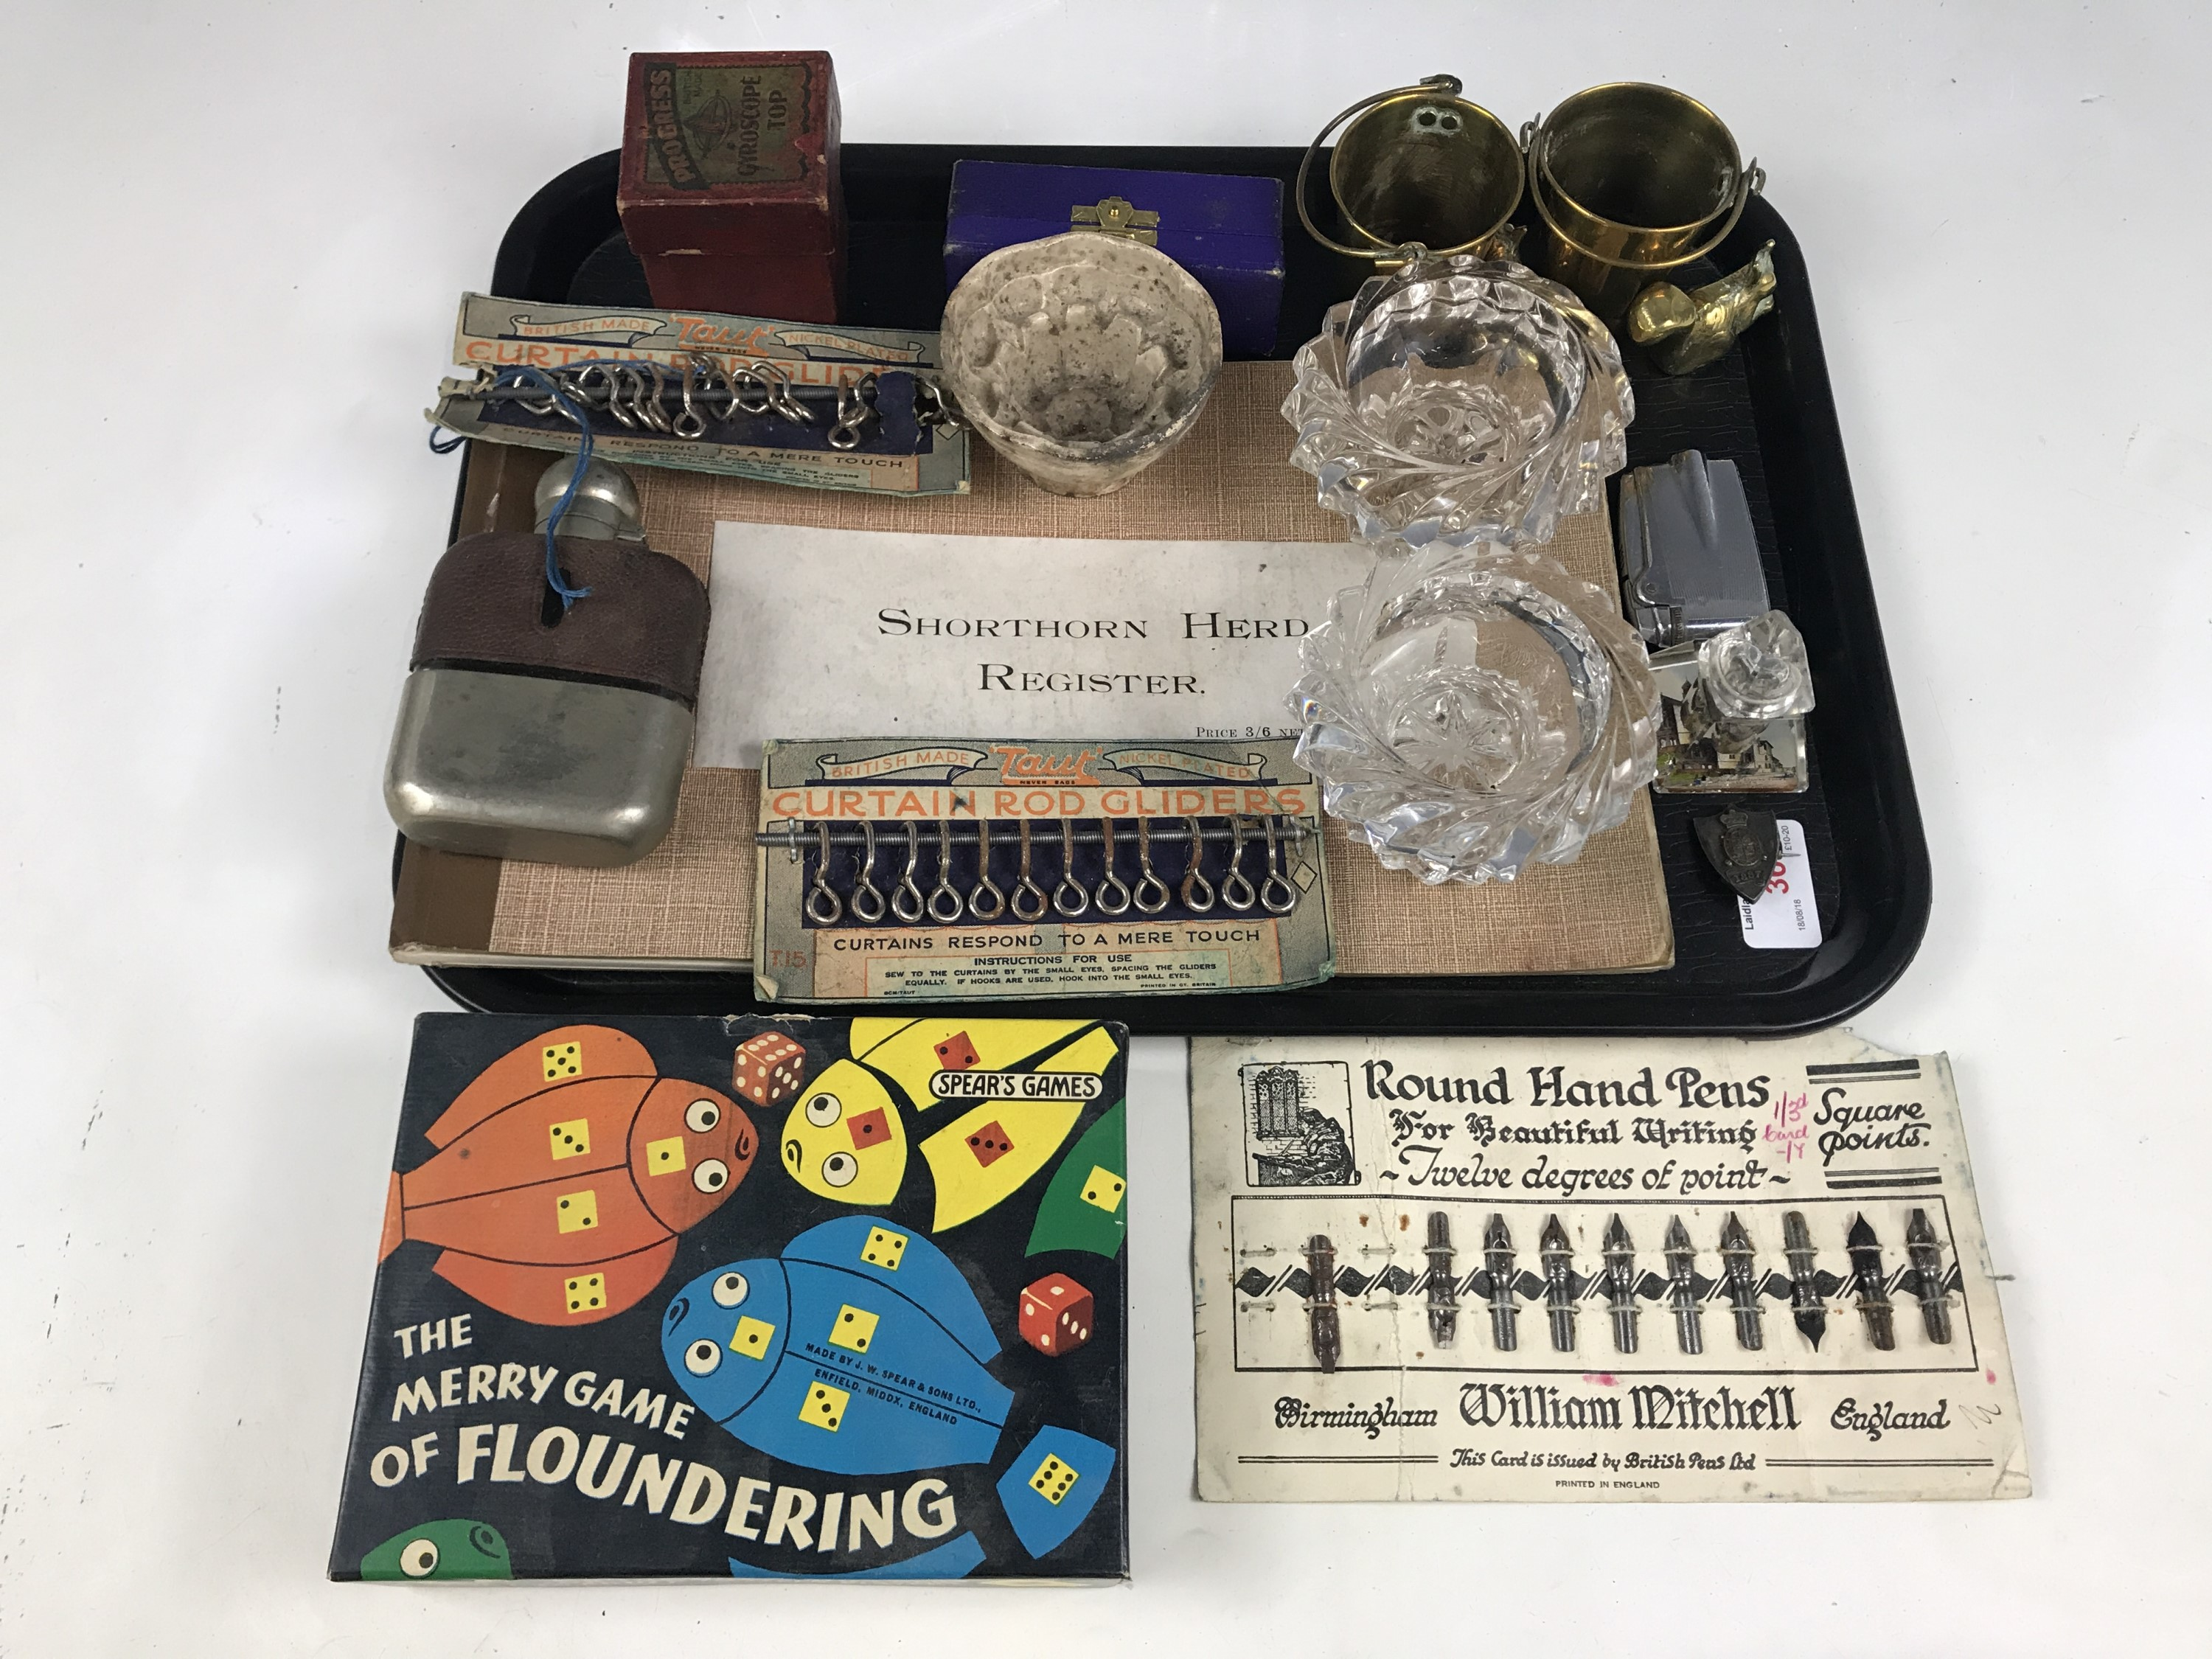 Lot 36 - Sundry collectors' items including a boxed Spear's Merry Game of Floundering, a hip flask, a pair of